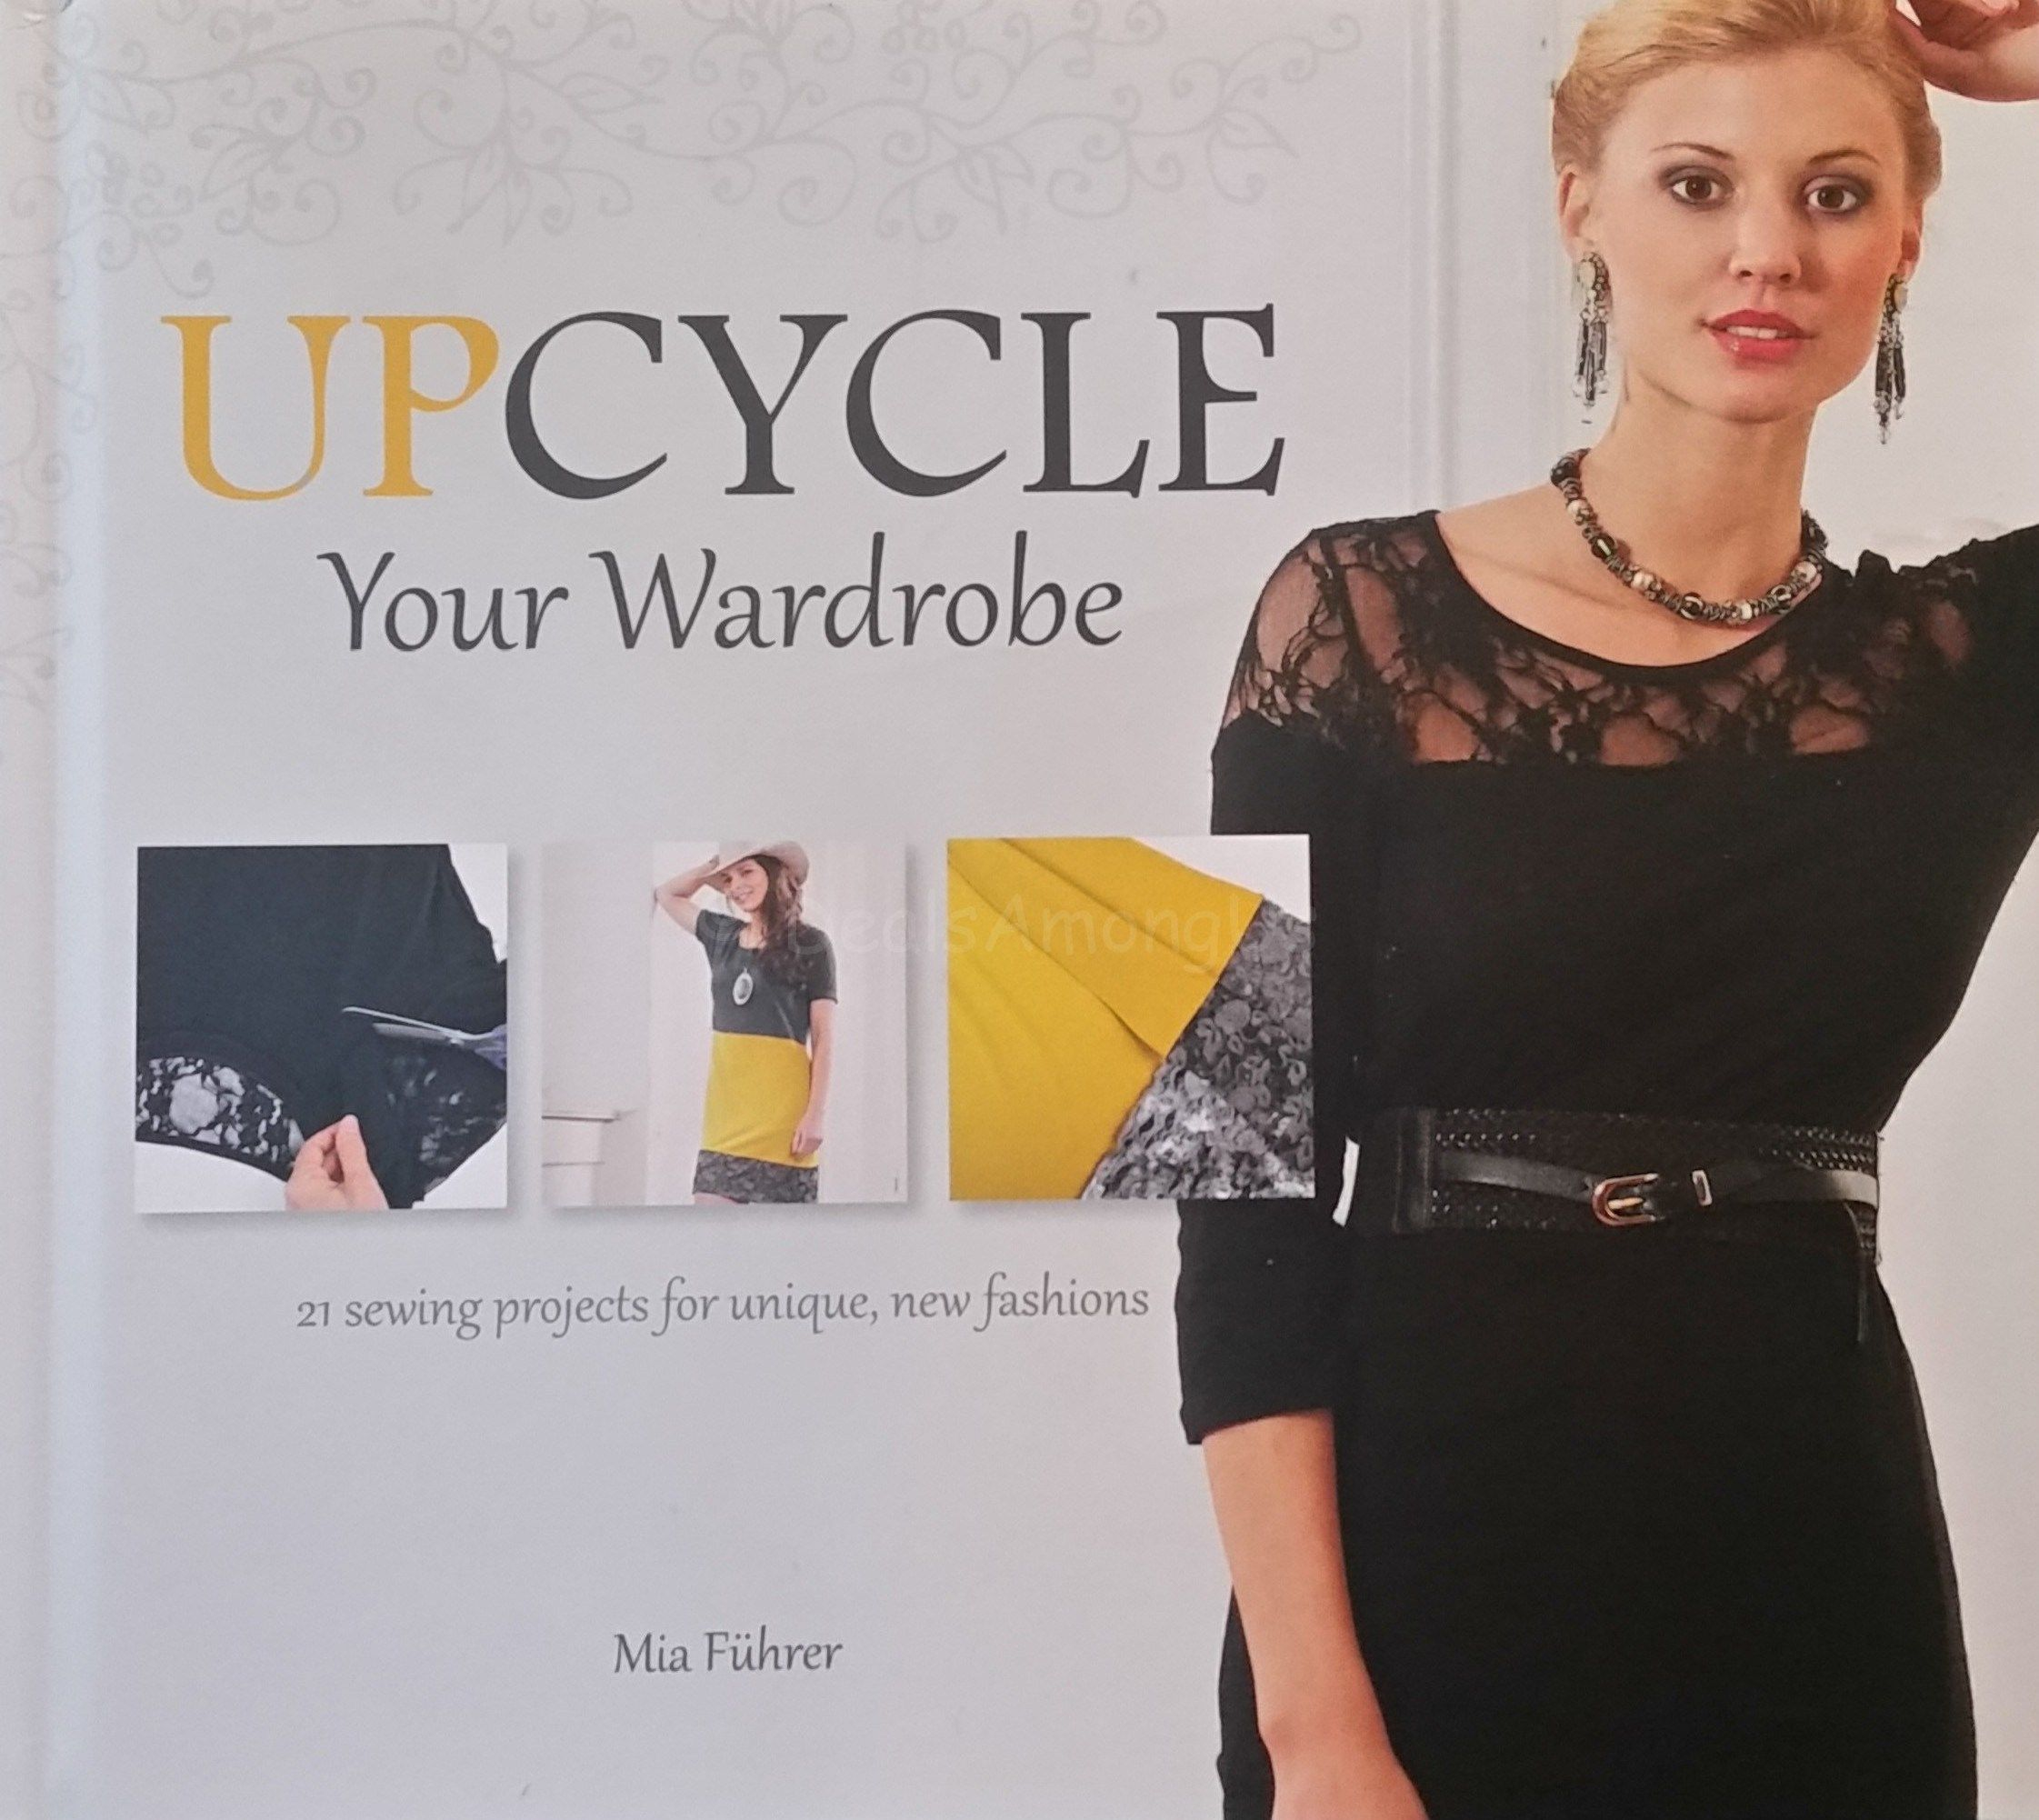 October 1 2015 Rachel Cericola 1 Comment: Upcycle Your Wardrobe Review